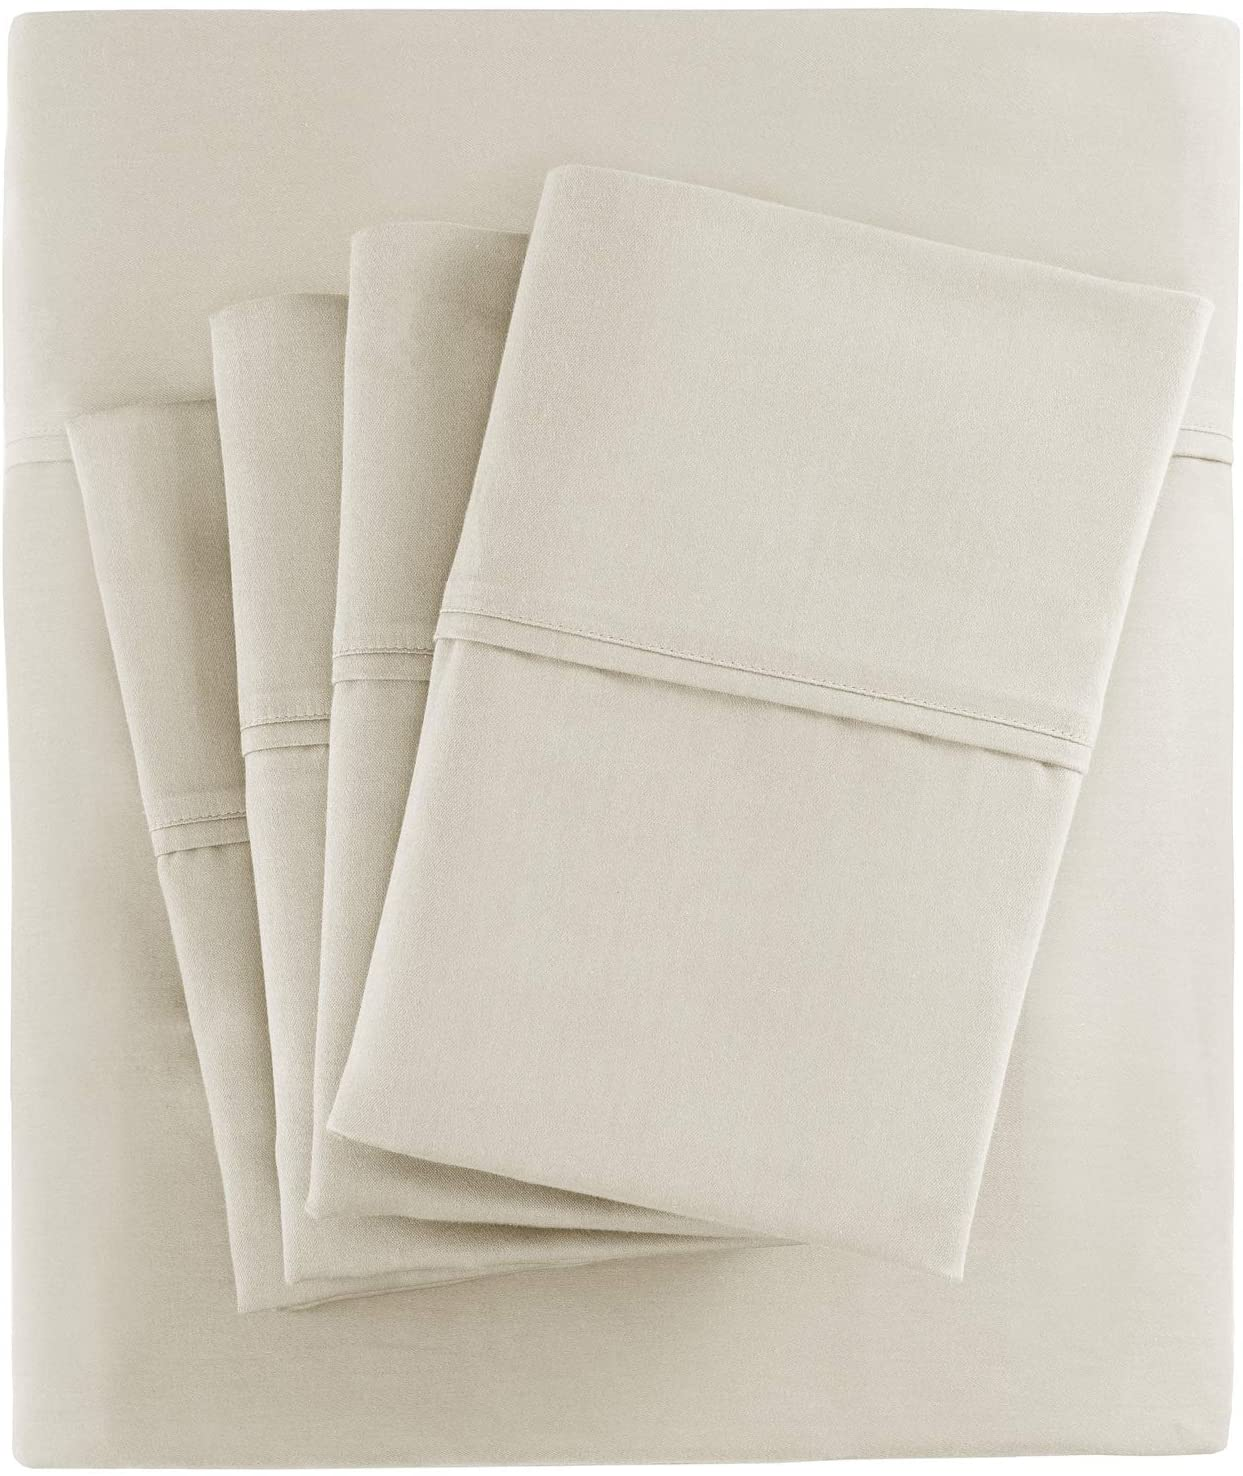 Madison Park 800 Thread Count Luxurious Wrinkle Free Breathable Cotton Rich Sateen 6 Piece Sheet Set, King Size, Ivory